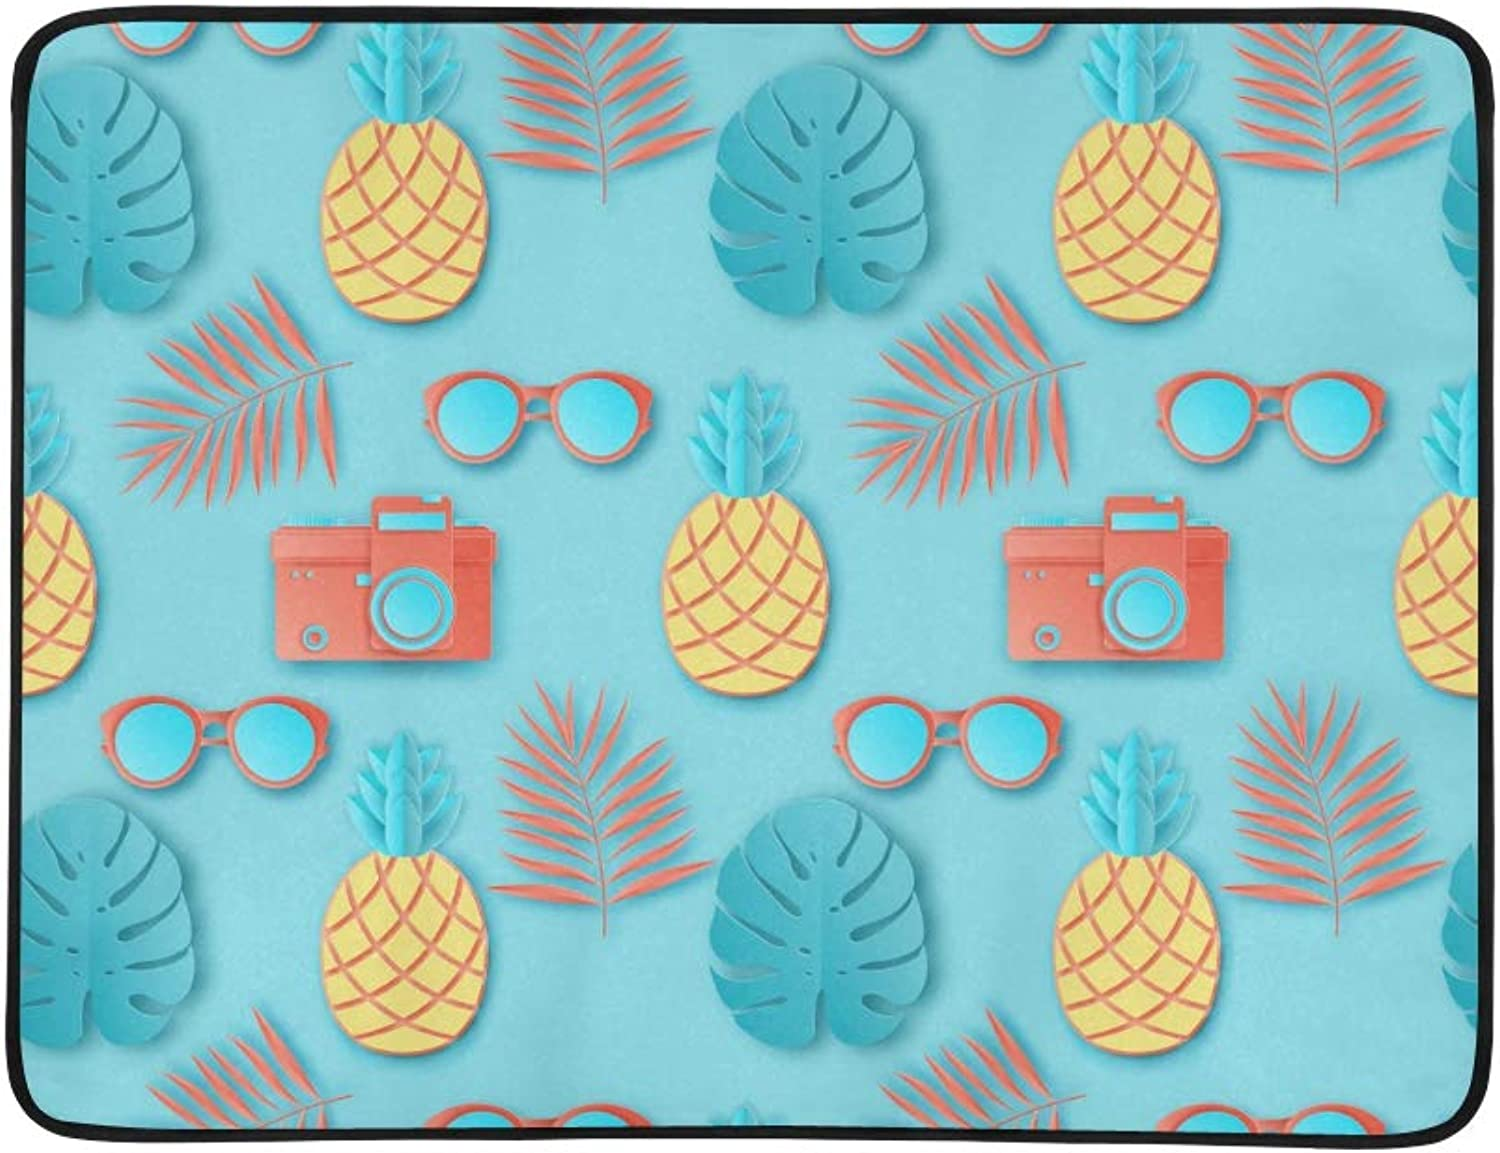 The Sun and Hibiscus Stripes Pattern Portable and Foldable Blanket Mat 60x78 Inch Handy Mat for Camping Picnic Beach Indoor Outdoor Travel